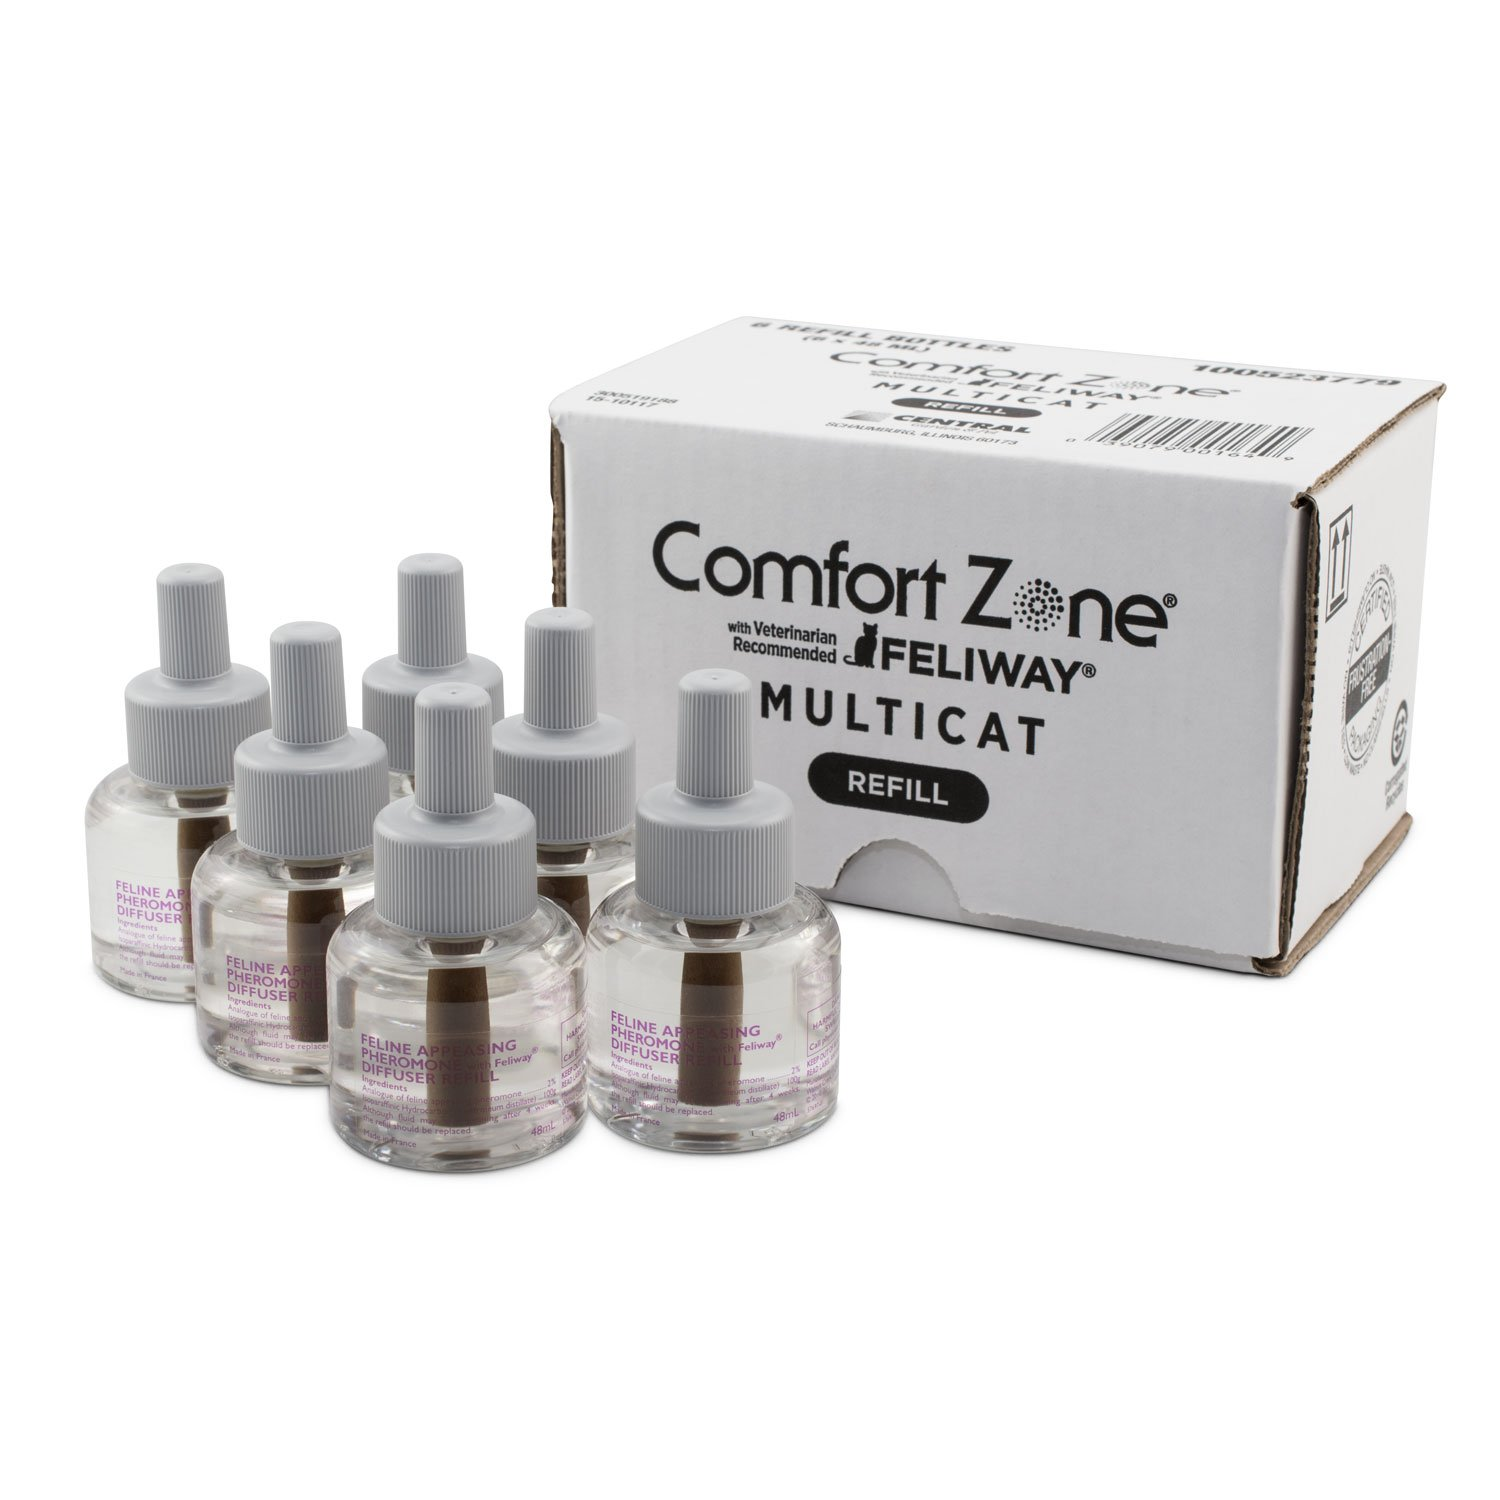 carton cz products all pheromone comforter zone leftview spray sprayscratch scratch comfort control cat feliway